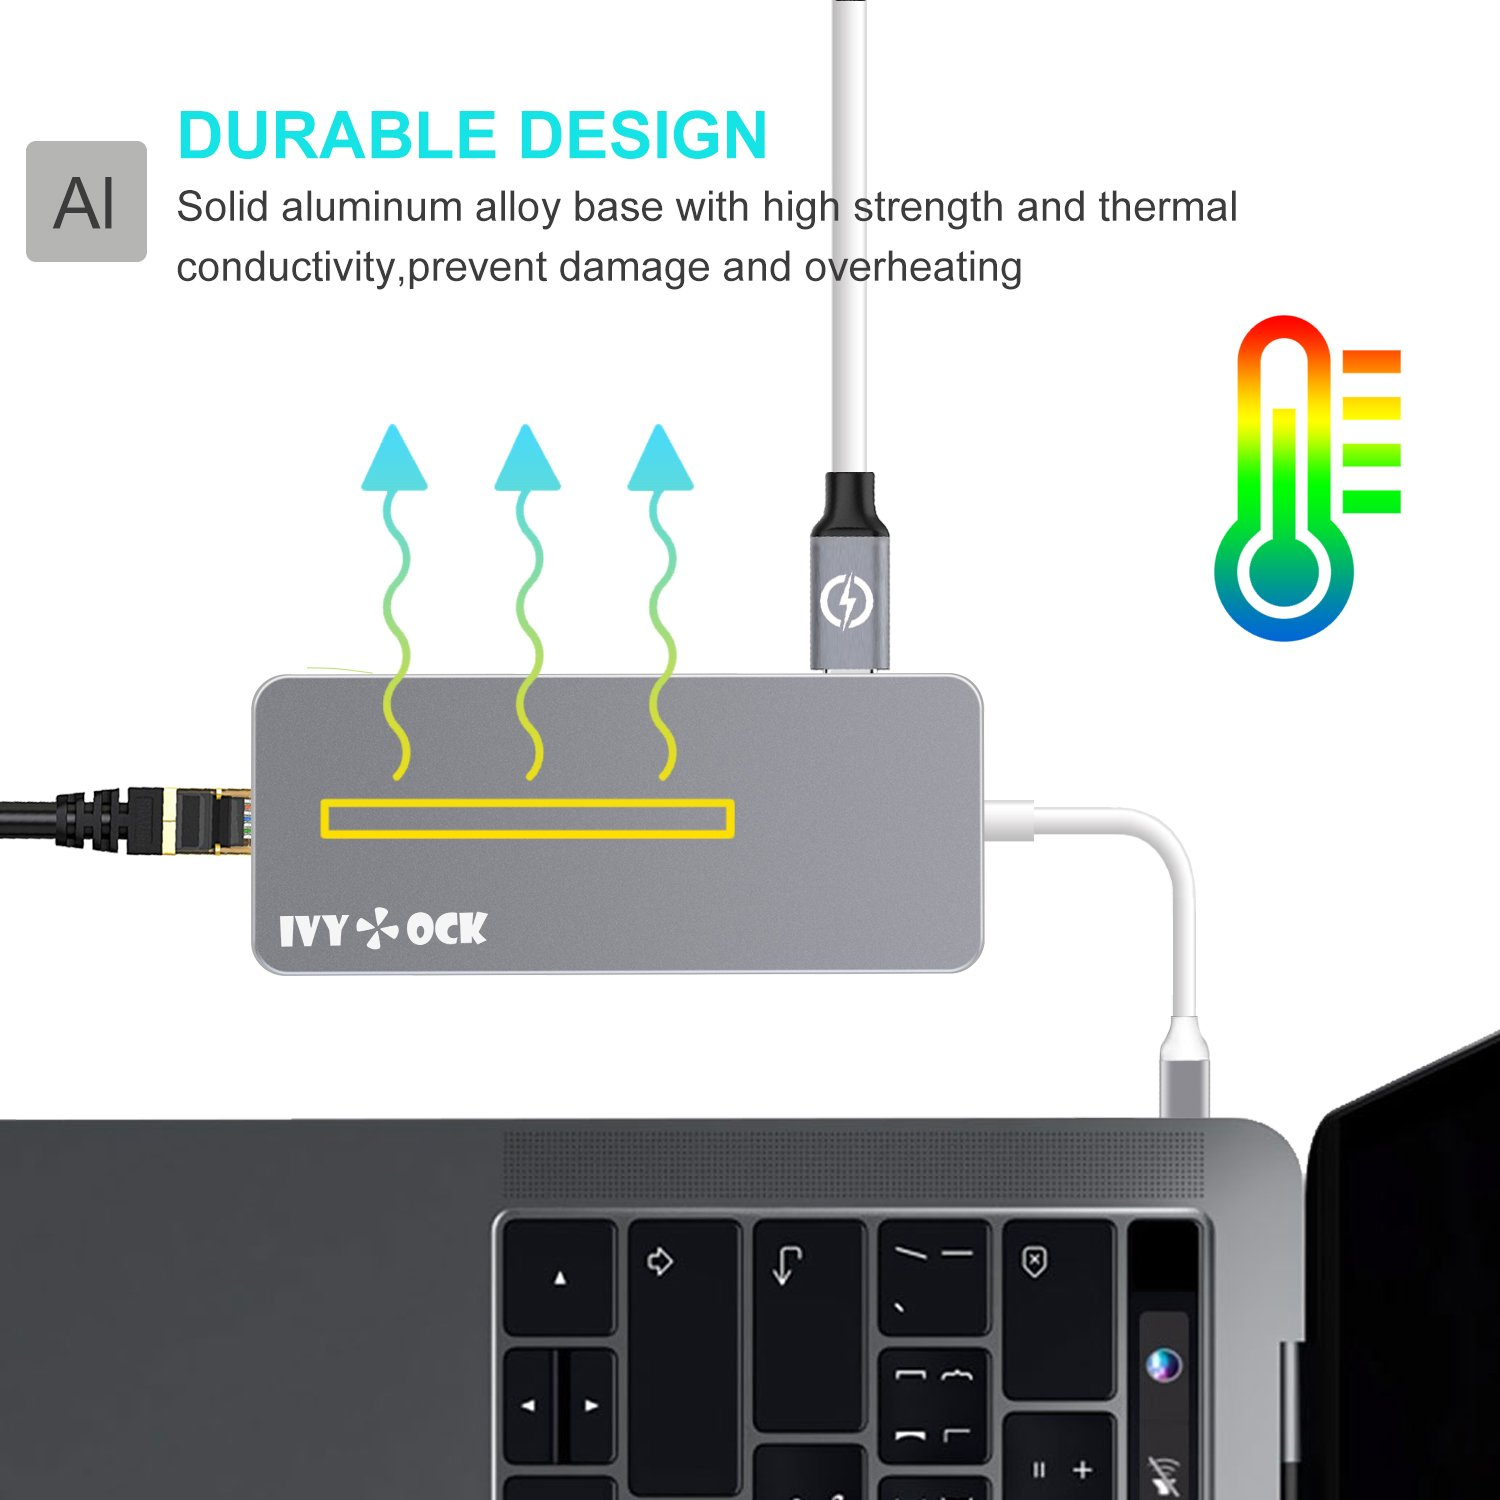 USB C Hub, IVYOCK Type C Hub Dongle with HDMI, Gigabit Ethernet, Type-C Charging Port, USB 3.0/2.0 Ports, SD/Micro SD Card Reader, USB-C Adapter for MacBook Pro/Pixelbook/Dell XPS/Yoga and More by IVYOCK (Image #6)